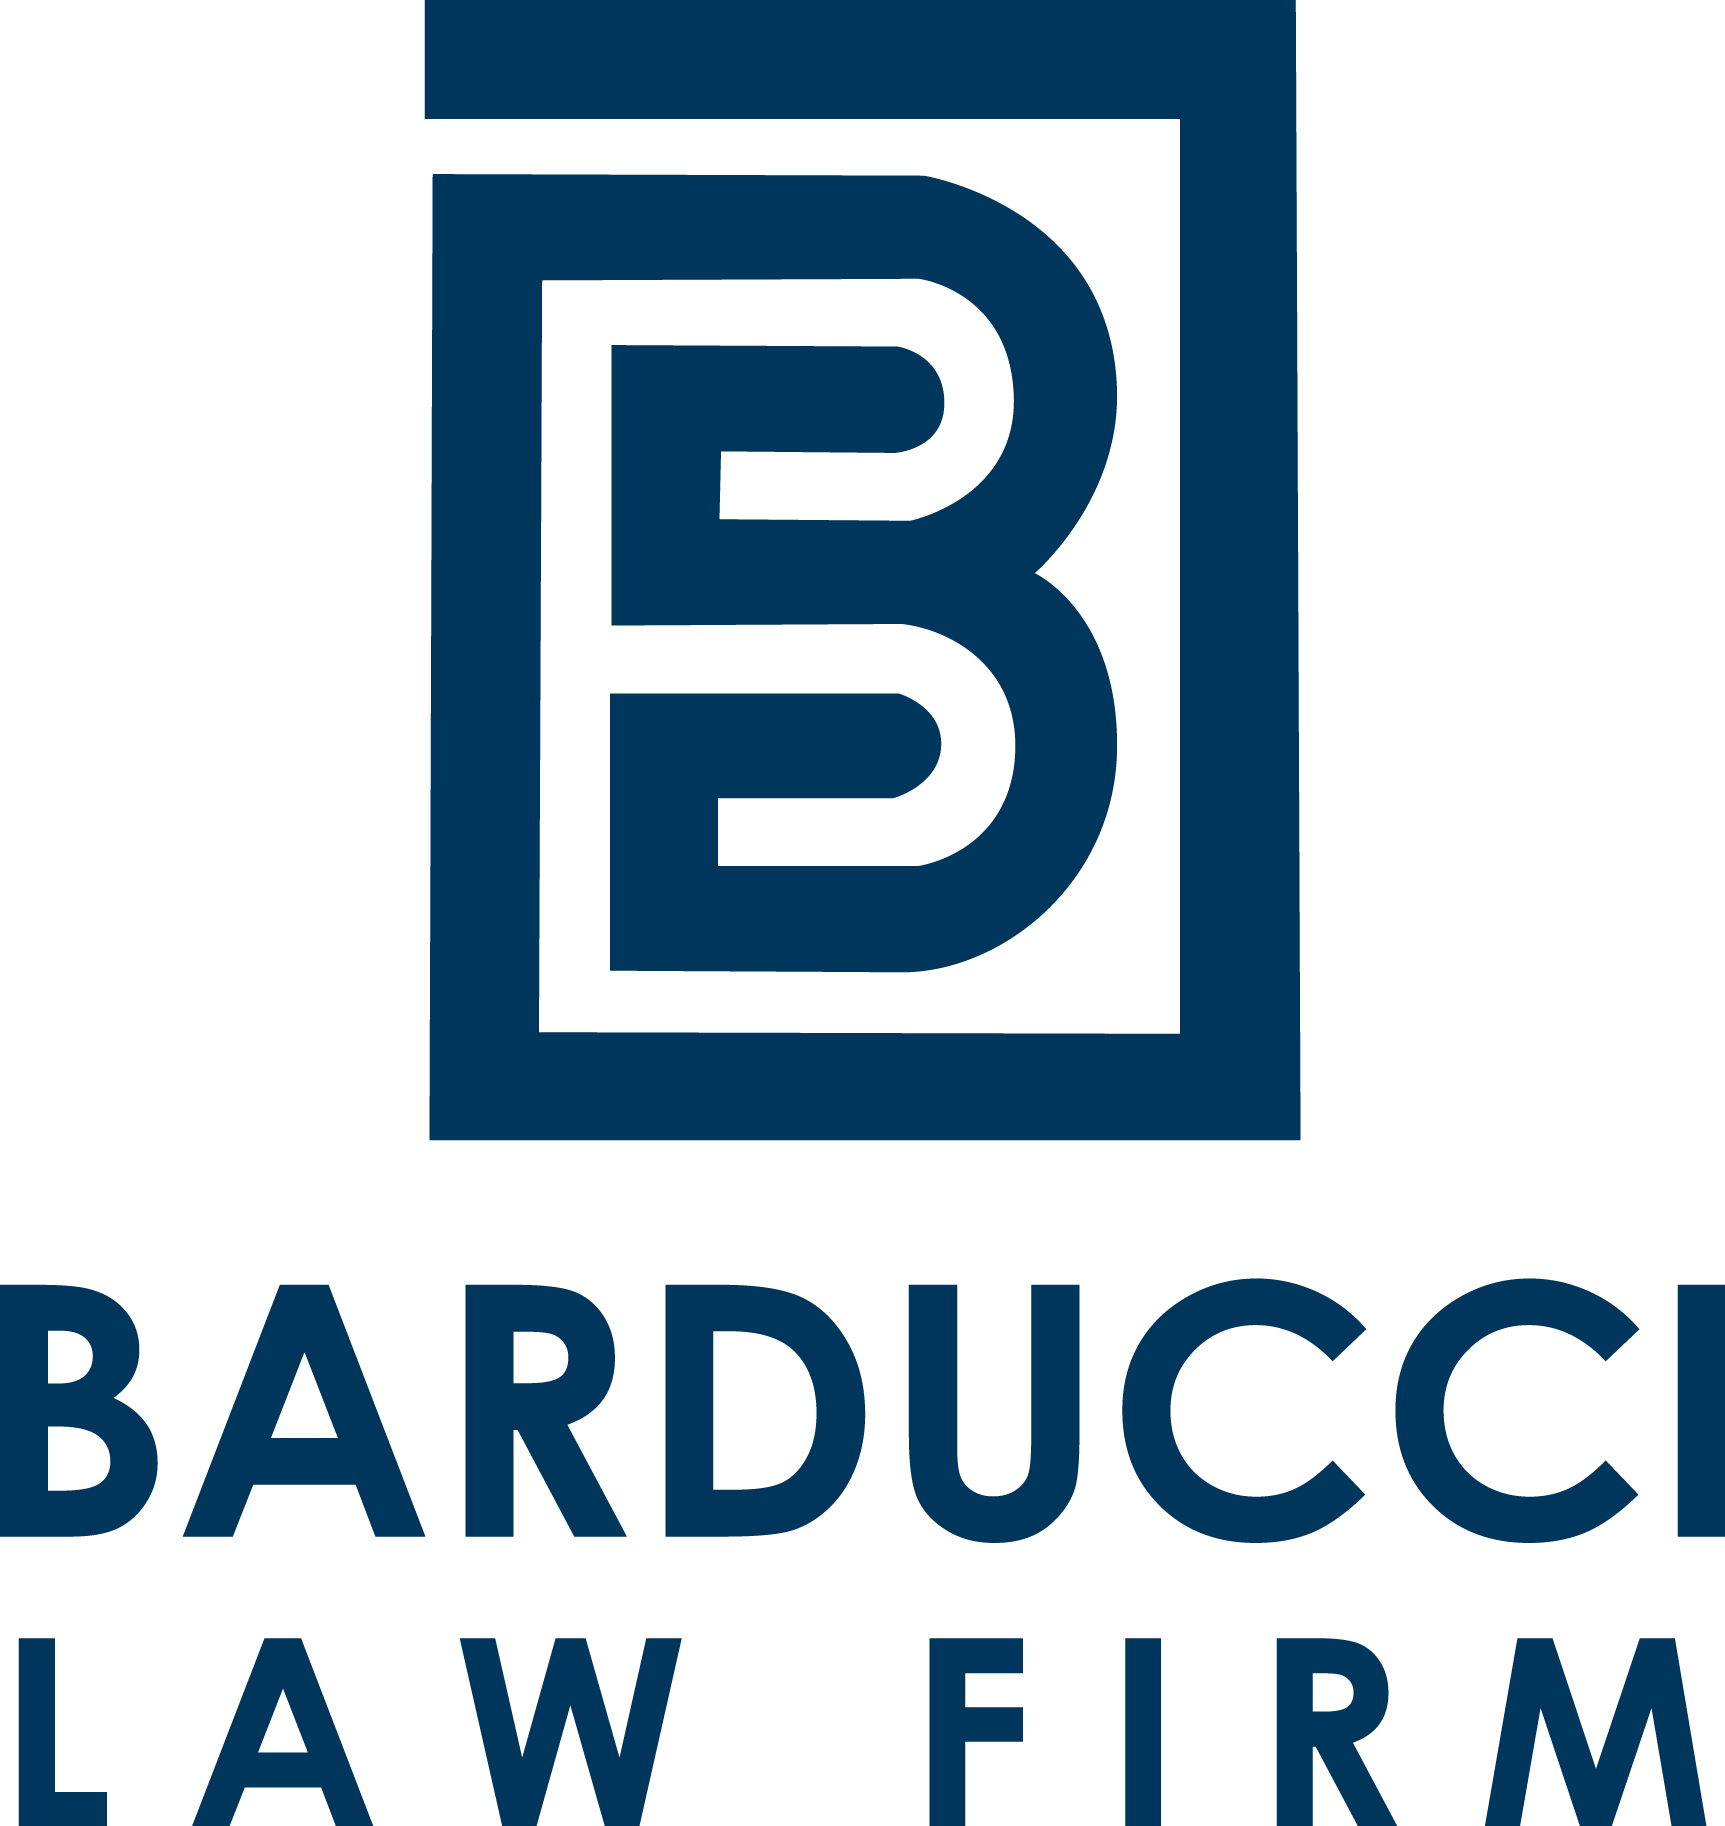 Barducci Law Firm PLLC